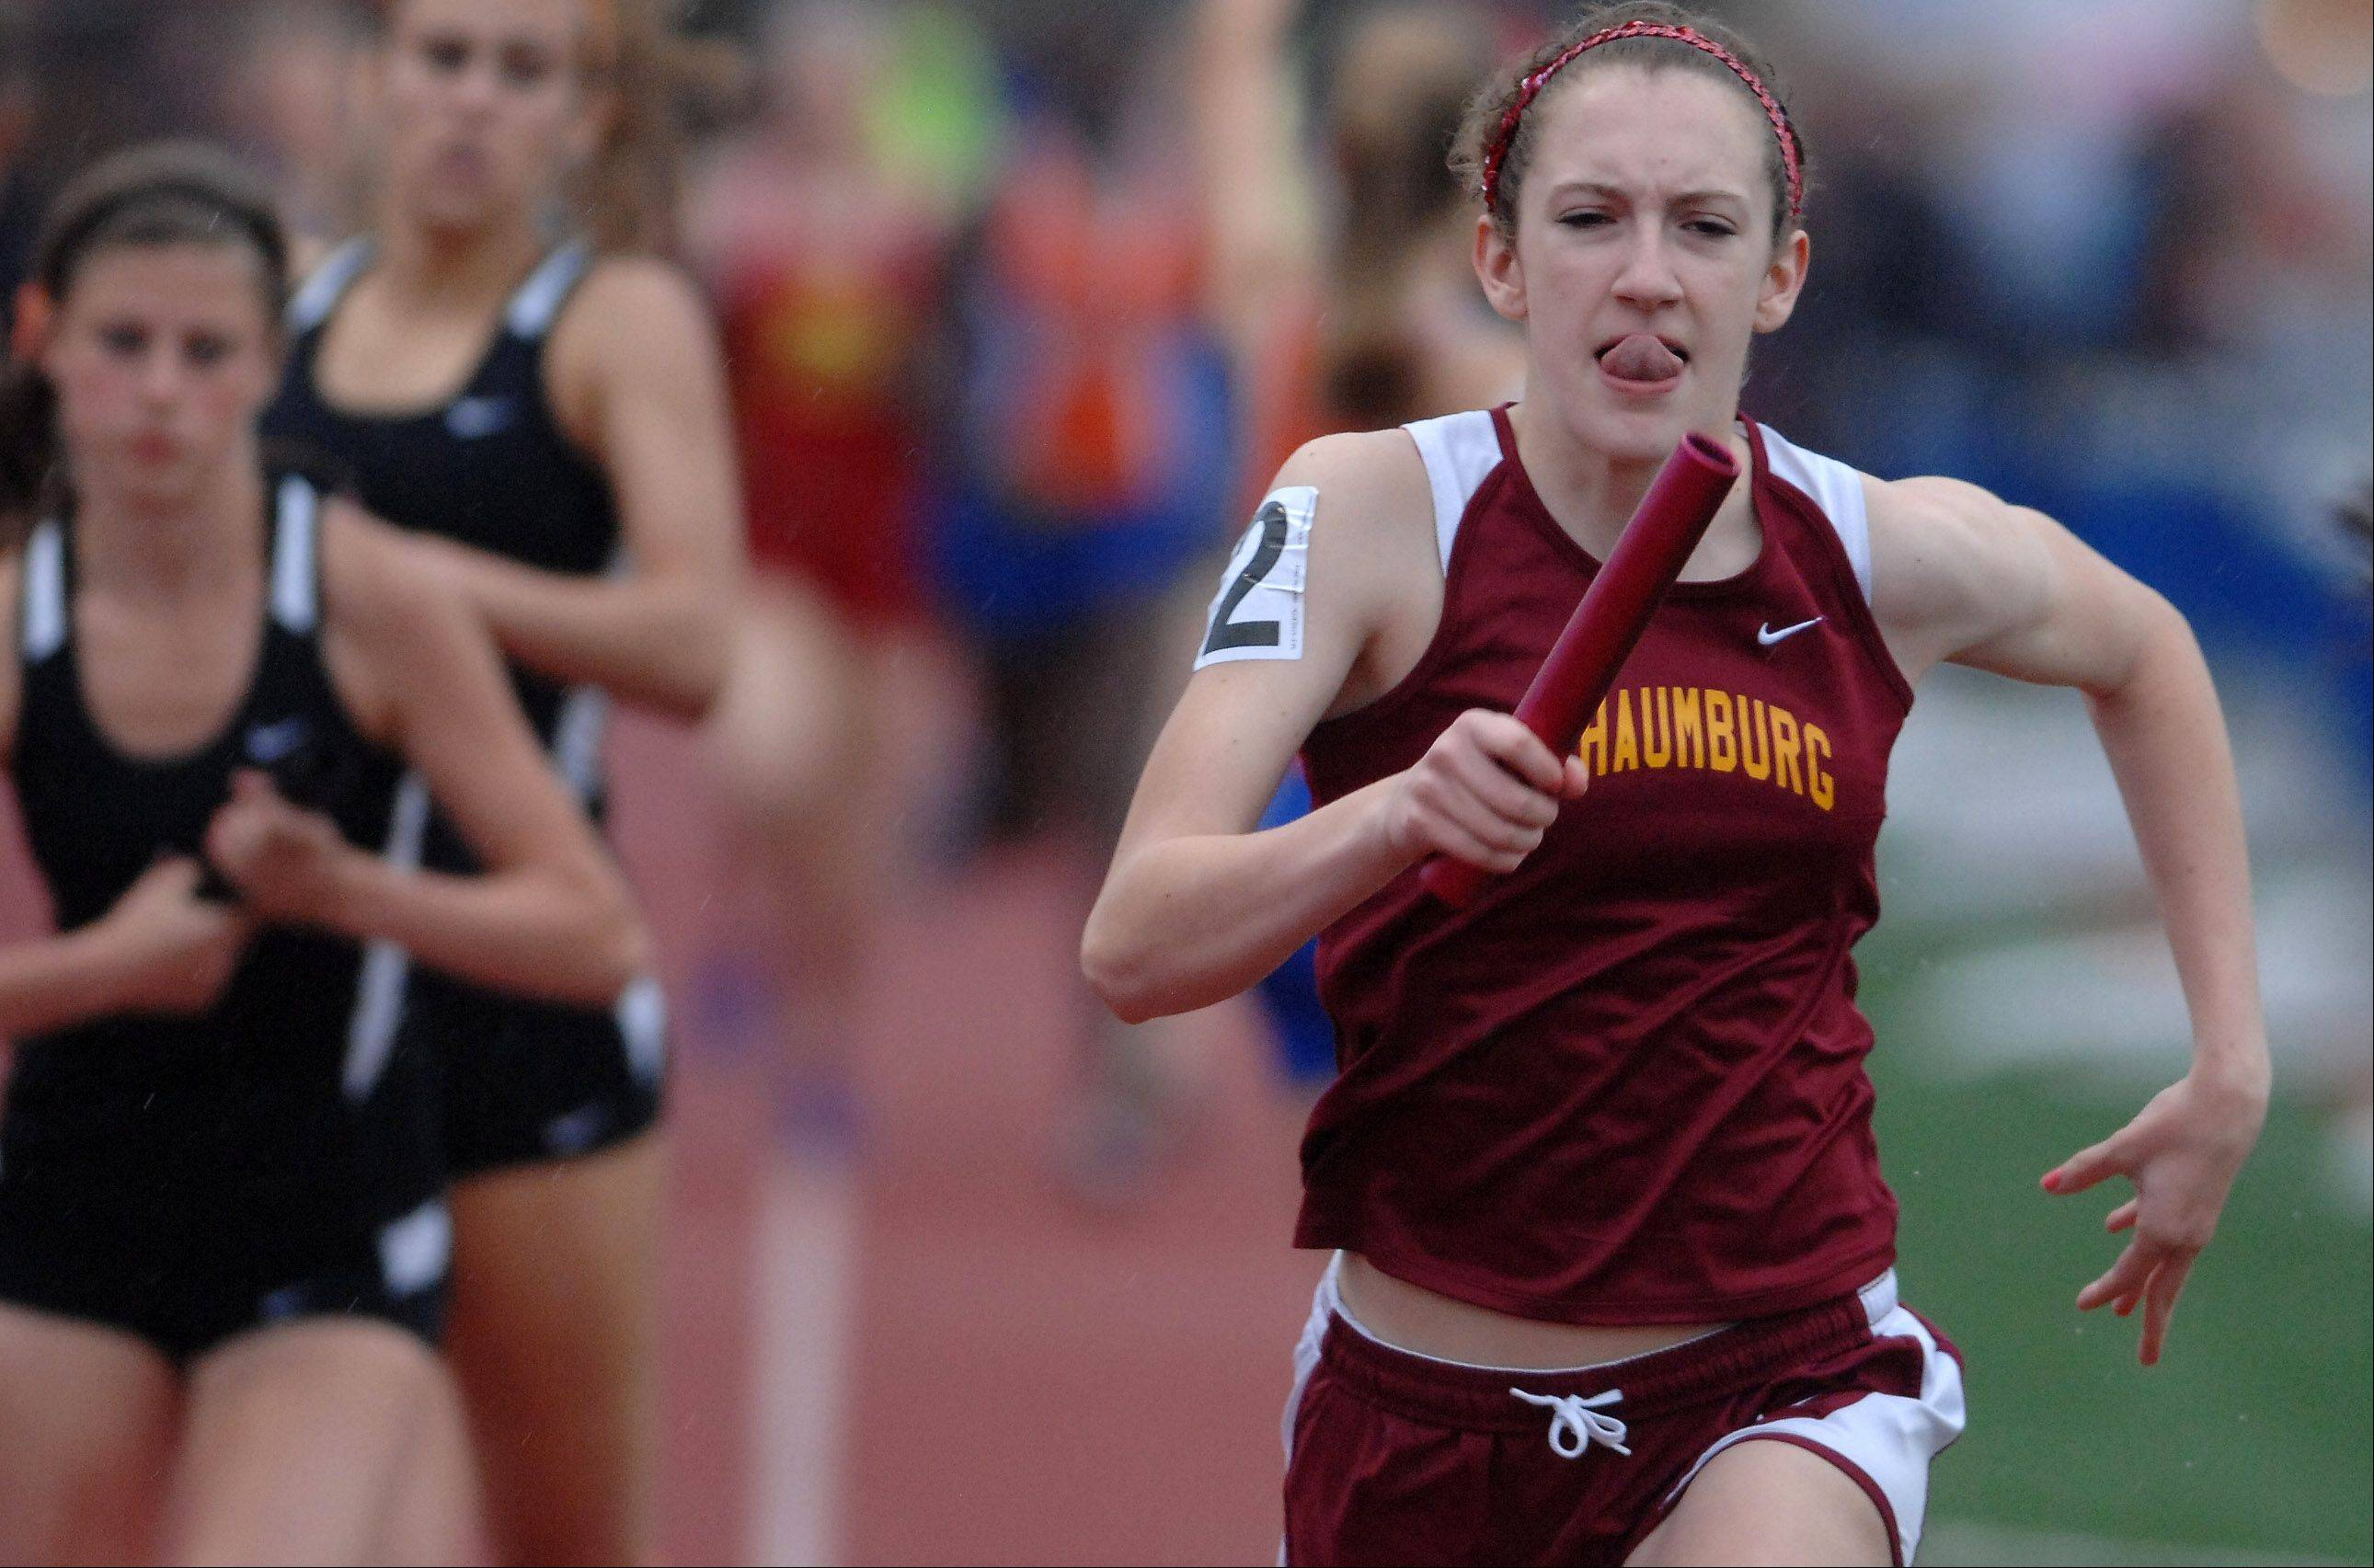 Erin Falsey of Schaumburg runs the anchor leg of the 3,200-meter relay during the West Aurora girl's track sectional Thursday.